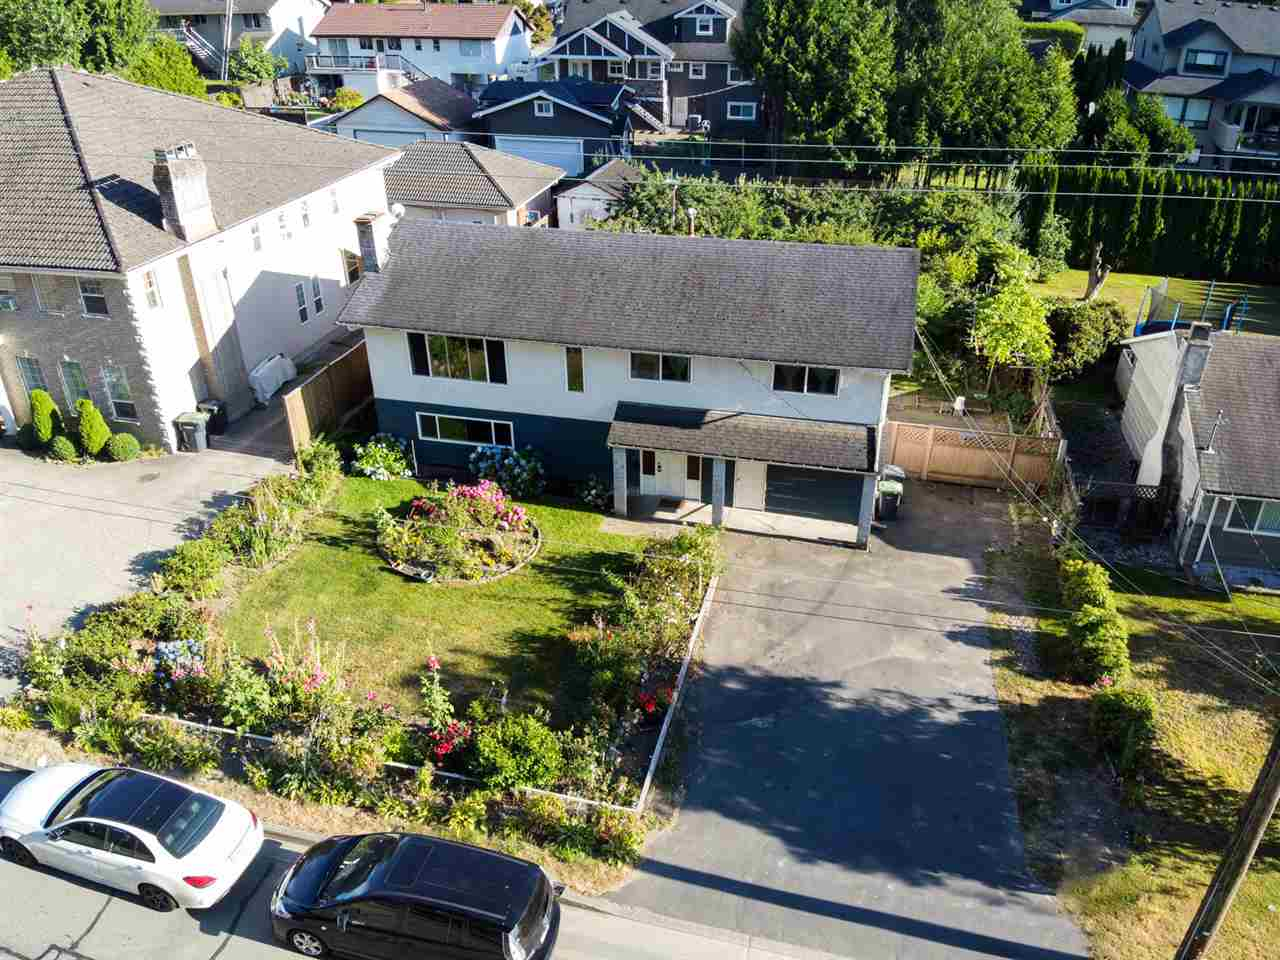 896 SMITH AVENUE - Coquitlam West House/Single Family for sale, 4 Bedrooms (R2484737) - #1